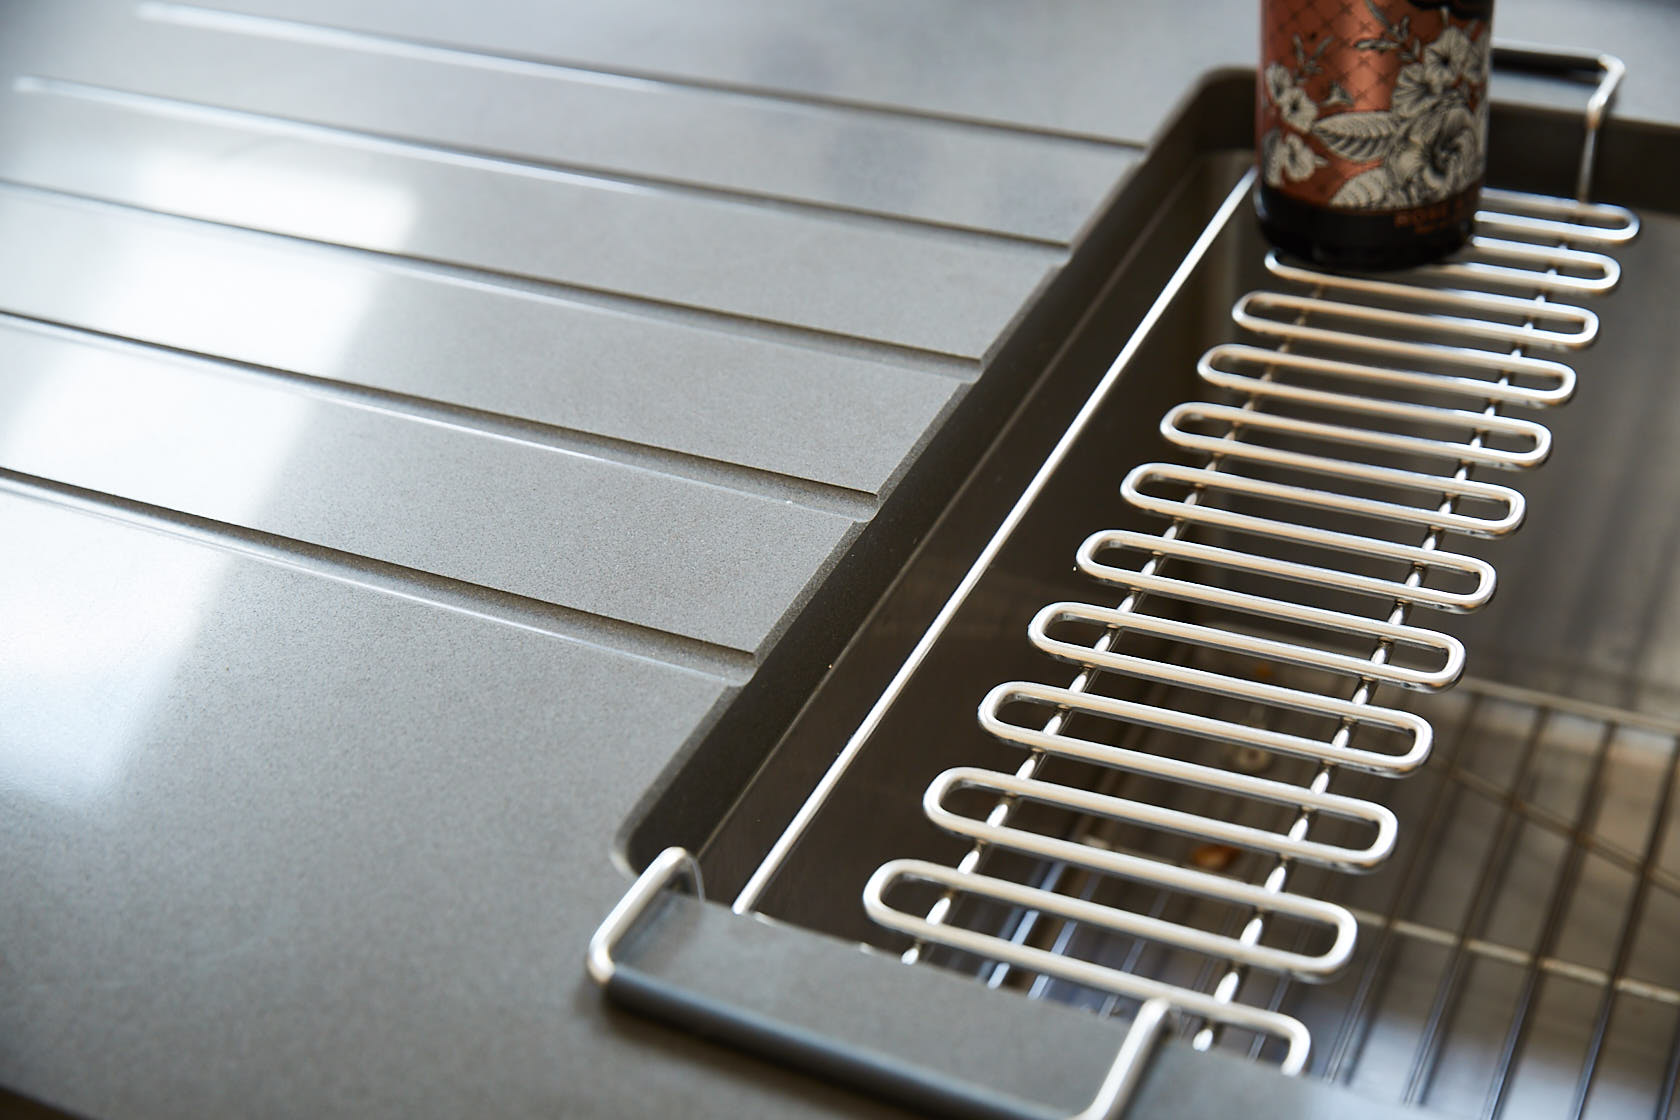 Caesarstone worktop with drainage grooves and wire rack above stainless steel metal sink